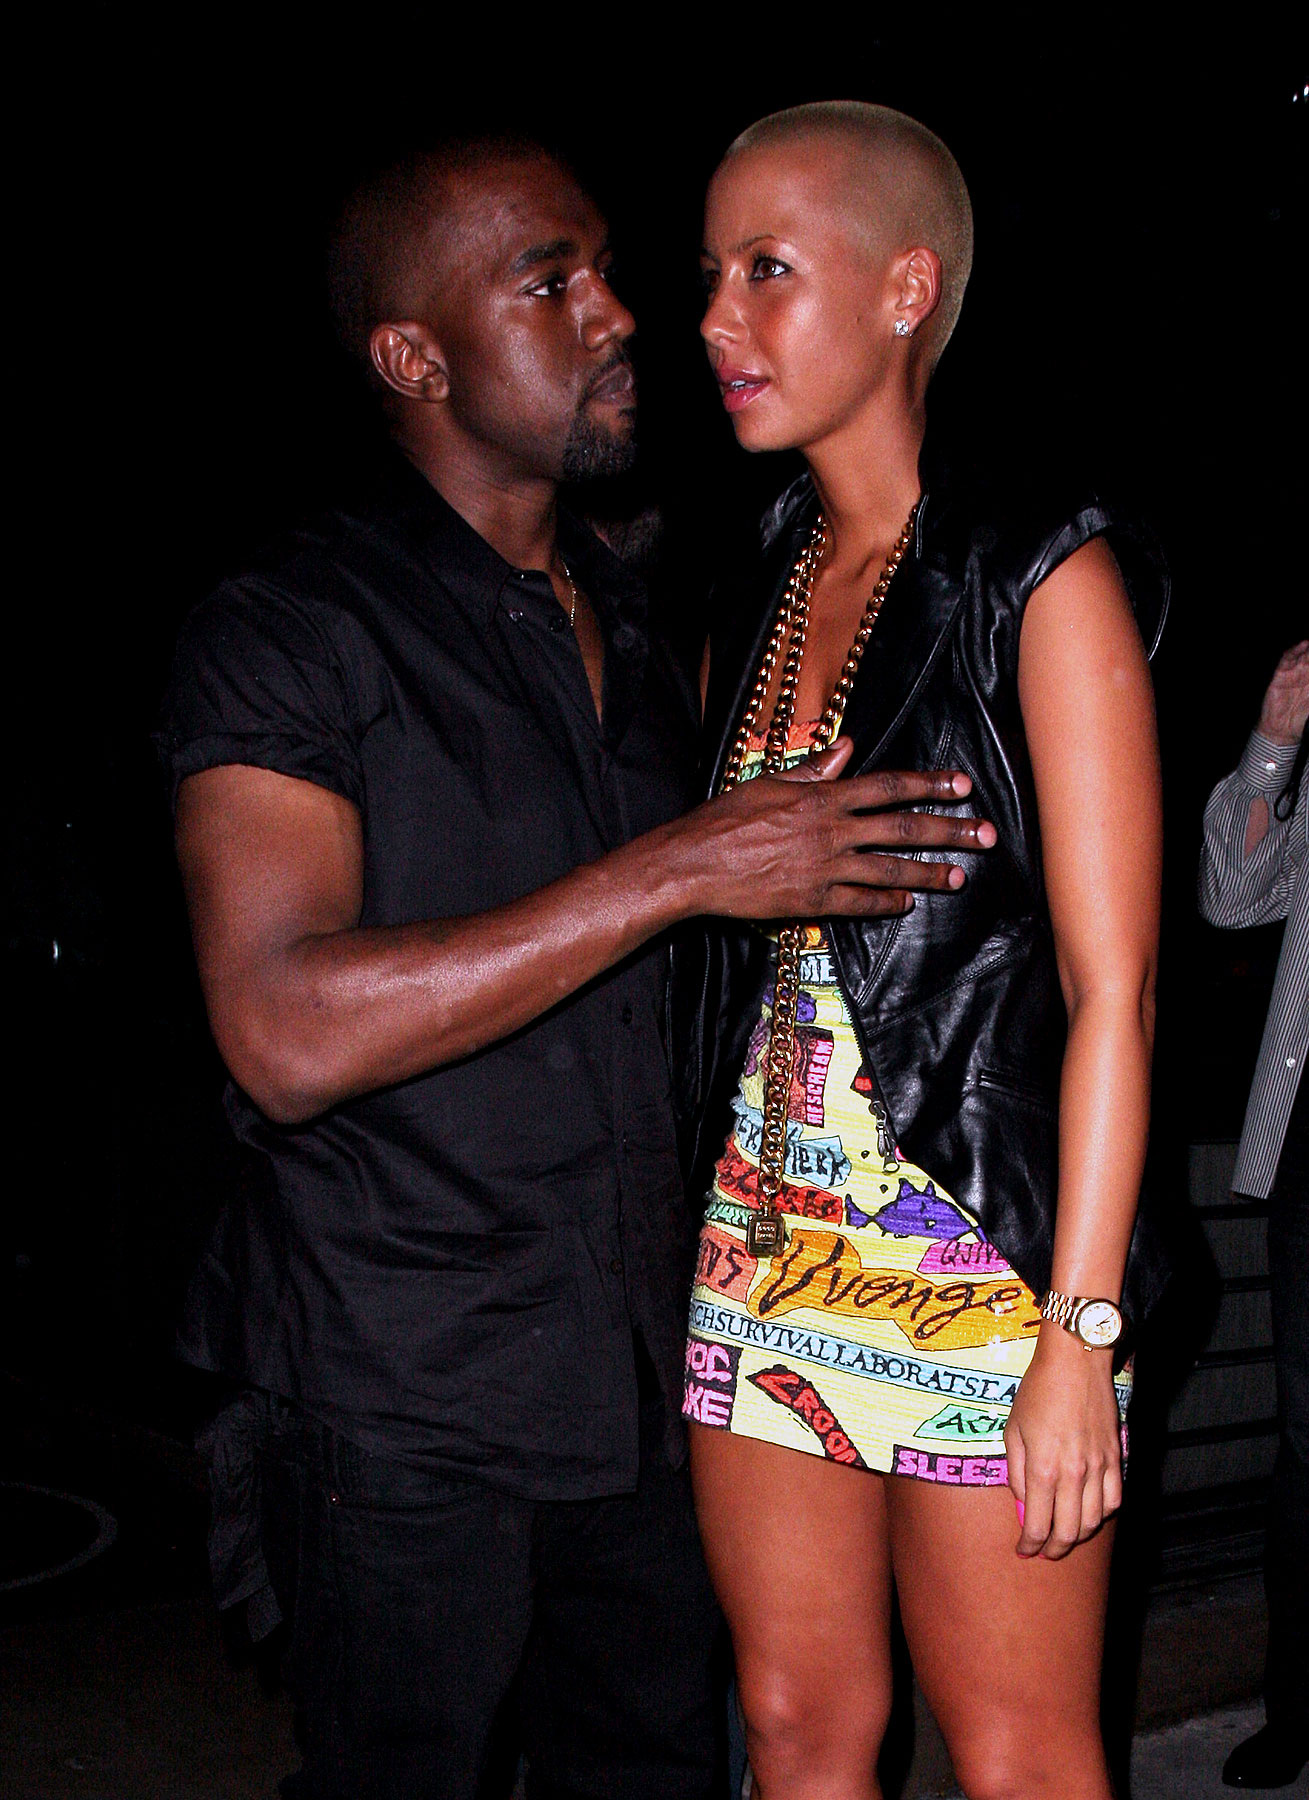 PHOTO GALLERY: Kanye West & Amber Rose Night Out